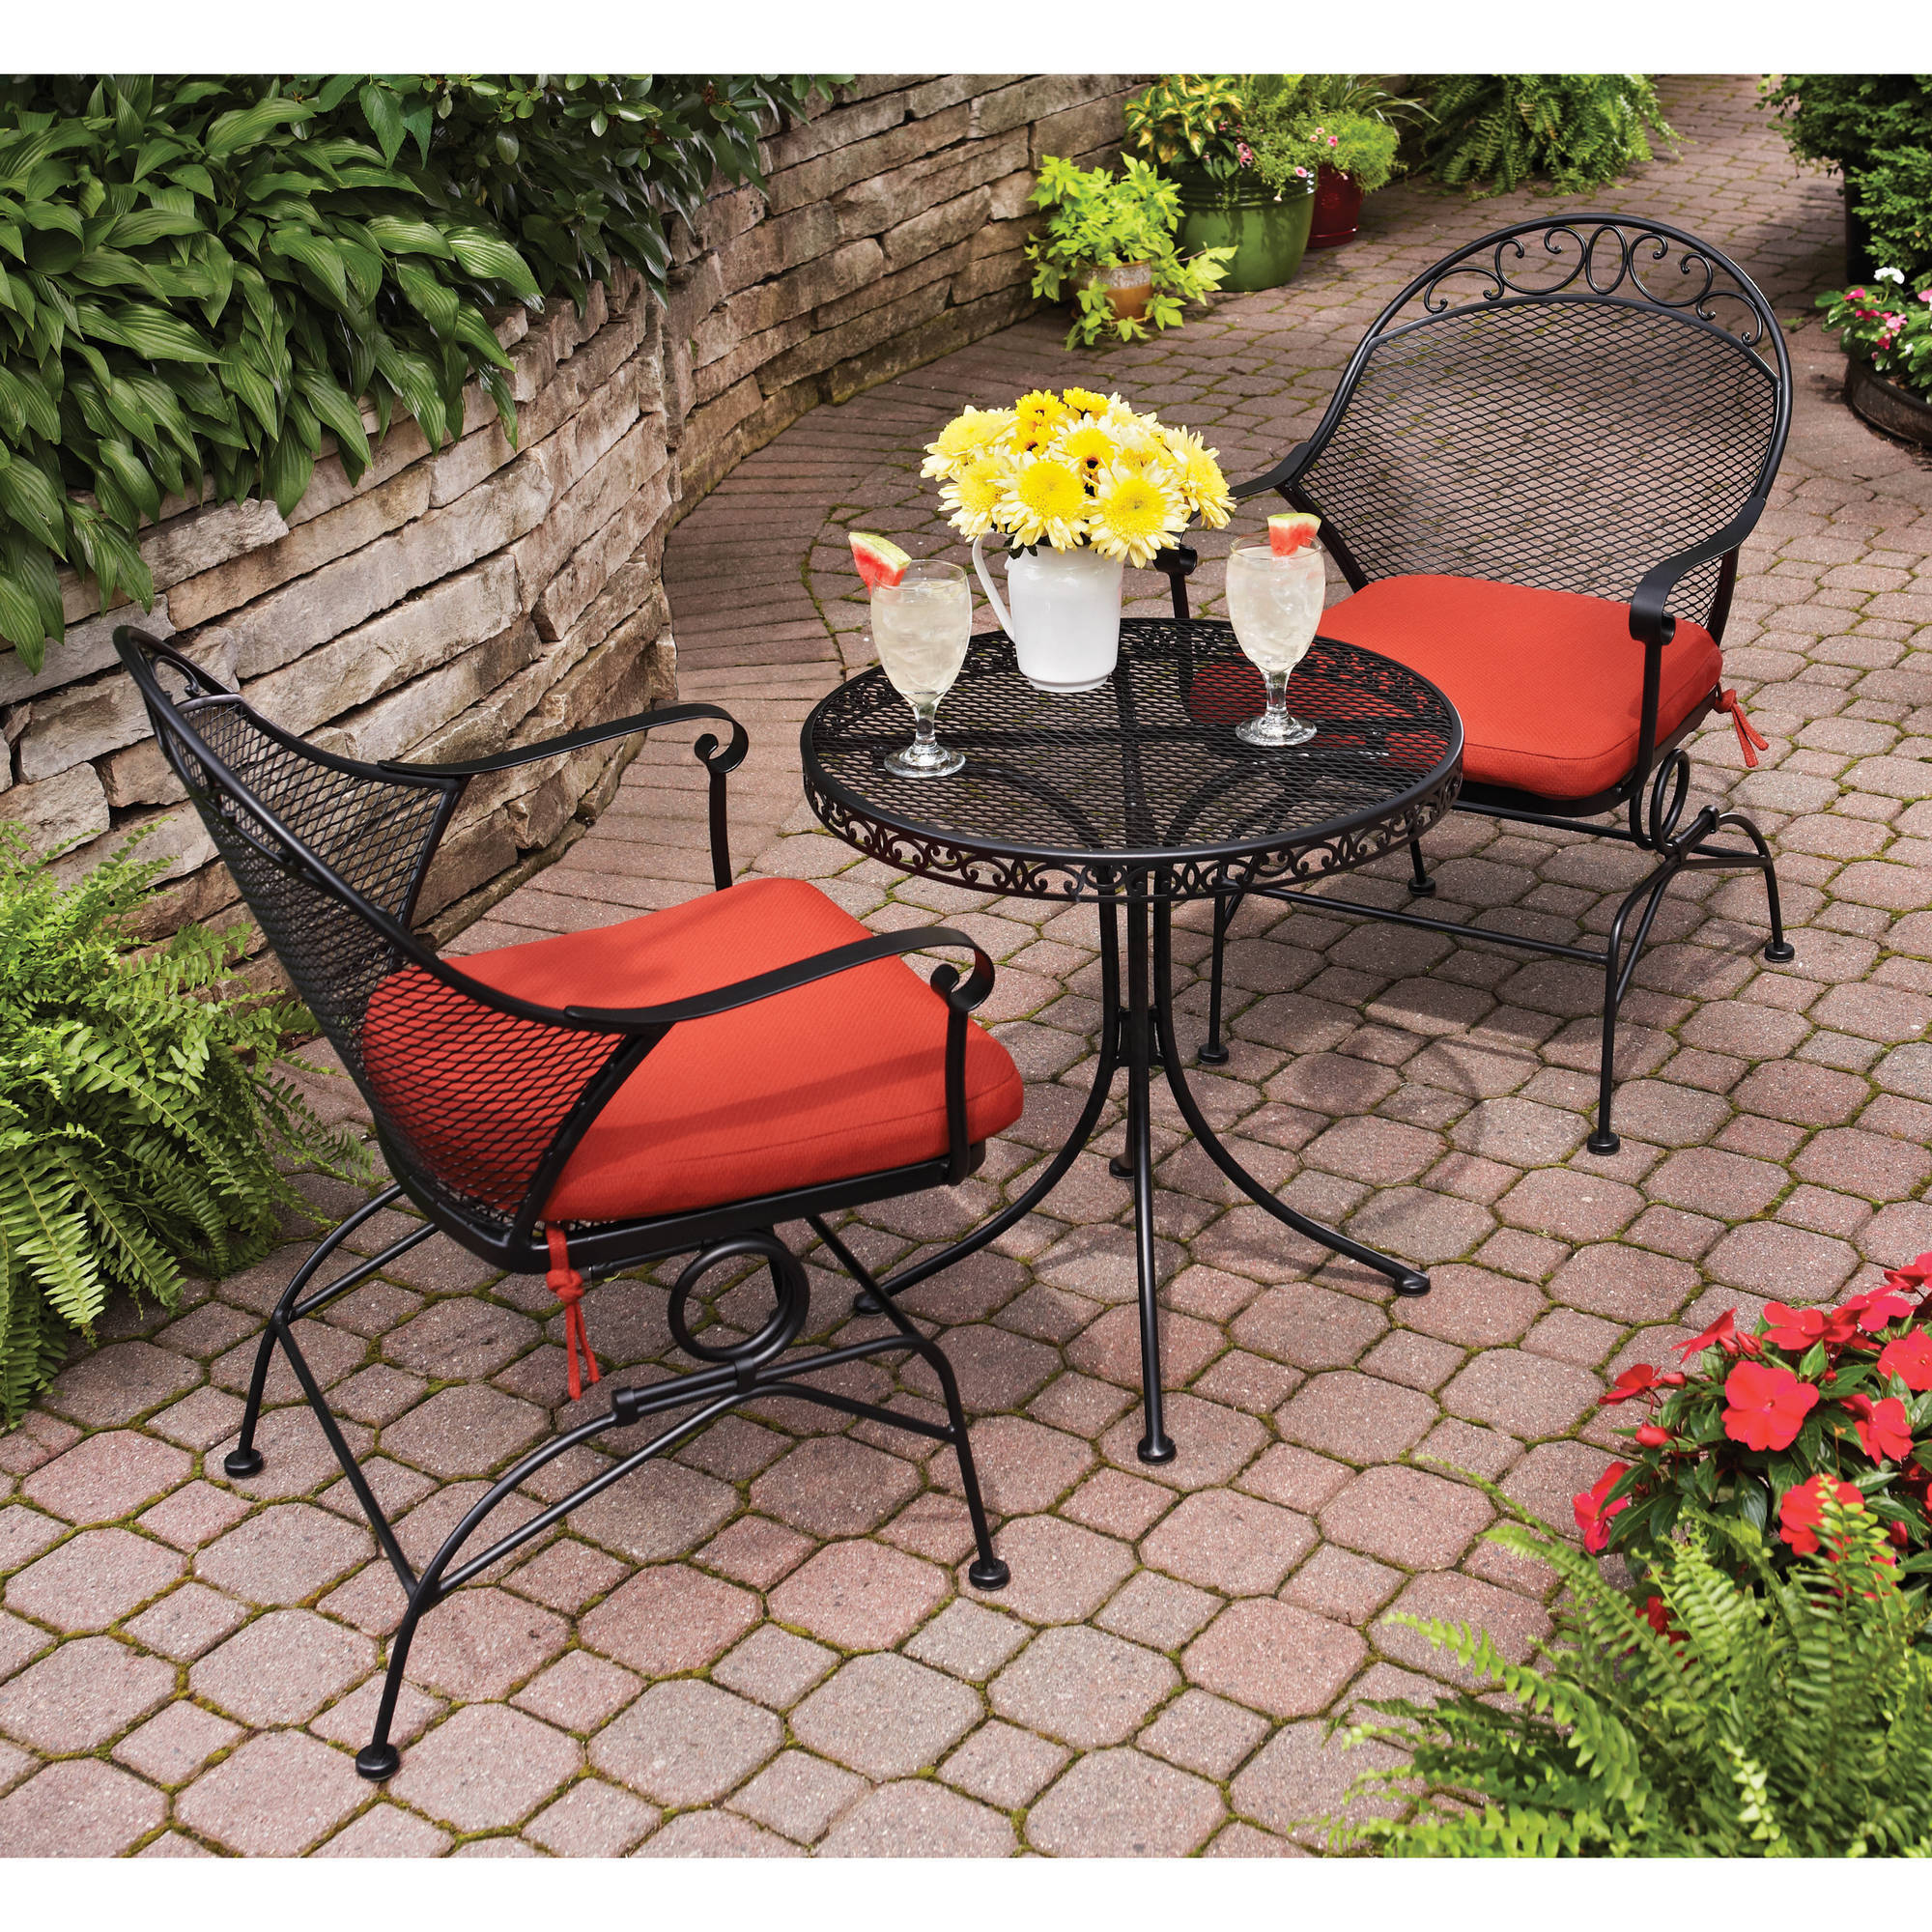 Bistro Patio Furniture.Details About 3 Piece Clayton Outdoor Bistro Set Uv Protection Water Stain Mildew Resistant